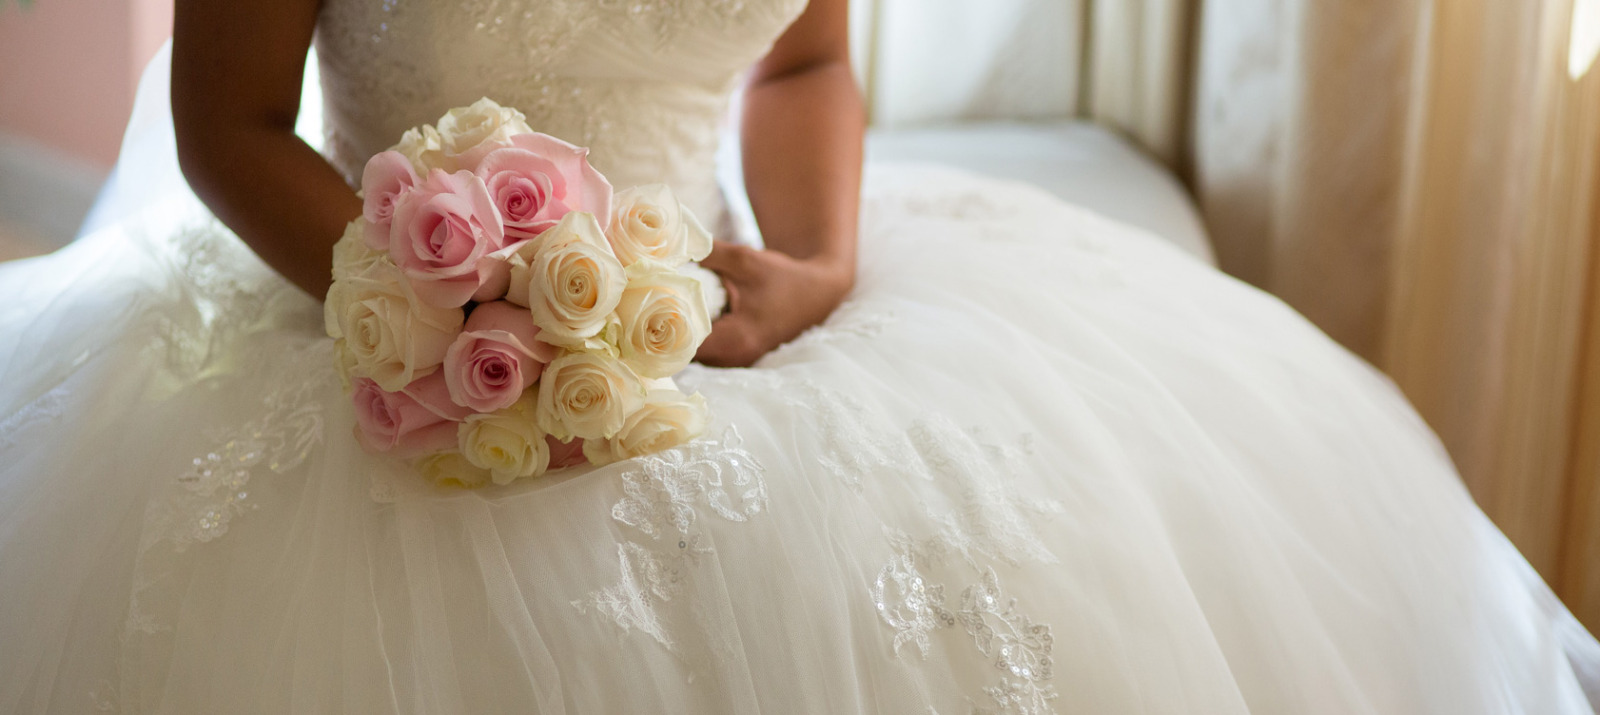 How Much Is Wedding Dress Dry Cleaning The Best Wedding Dresses